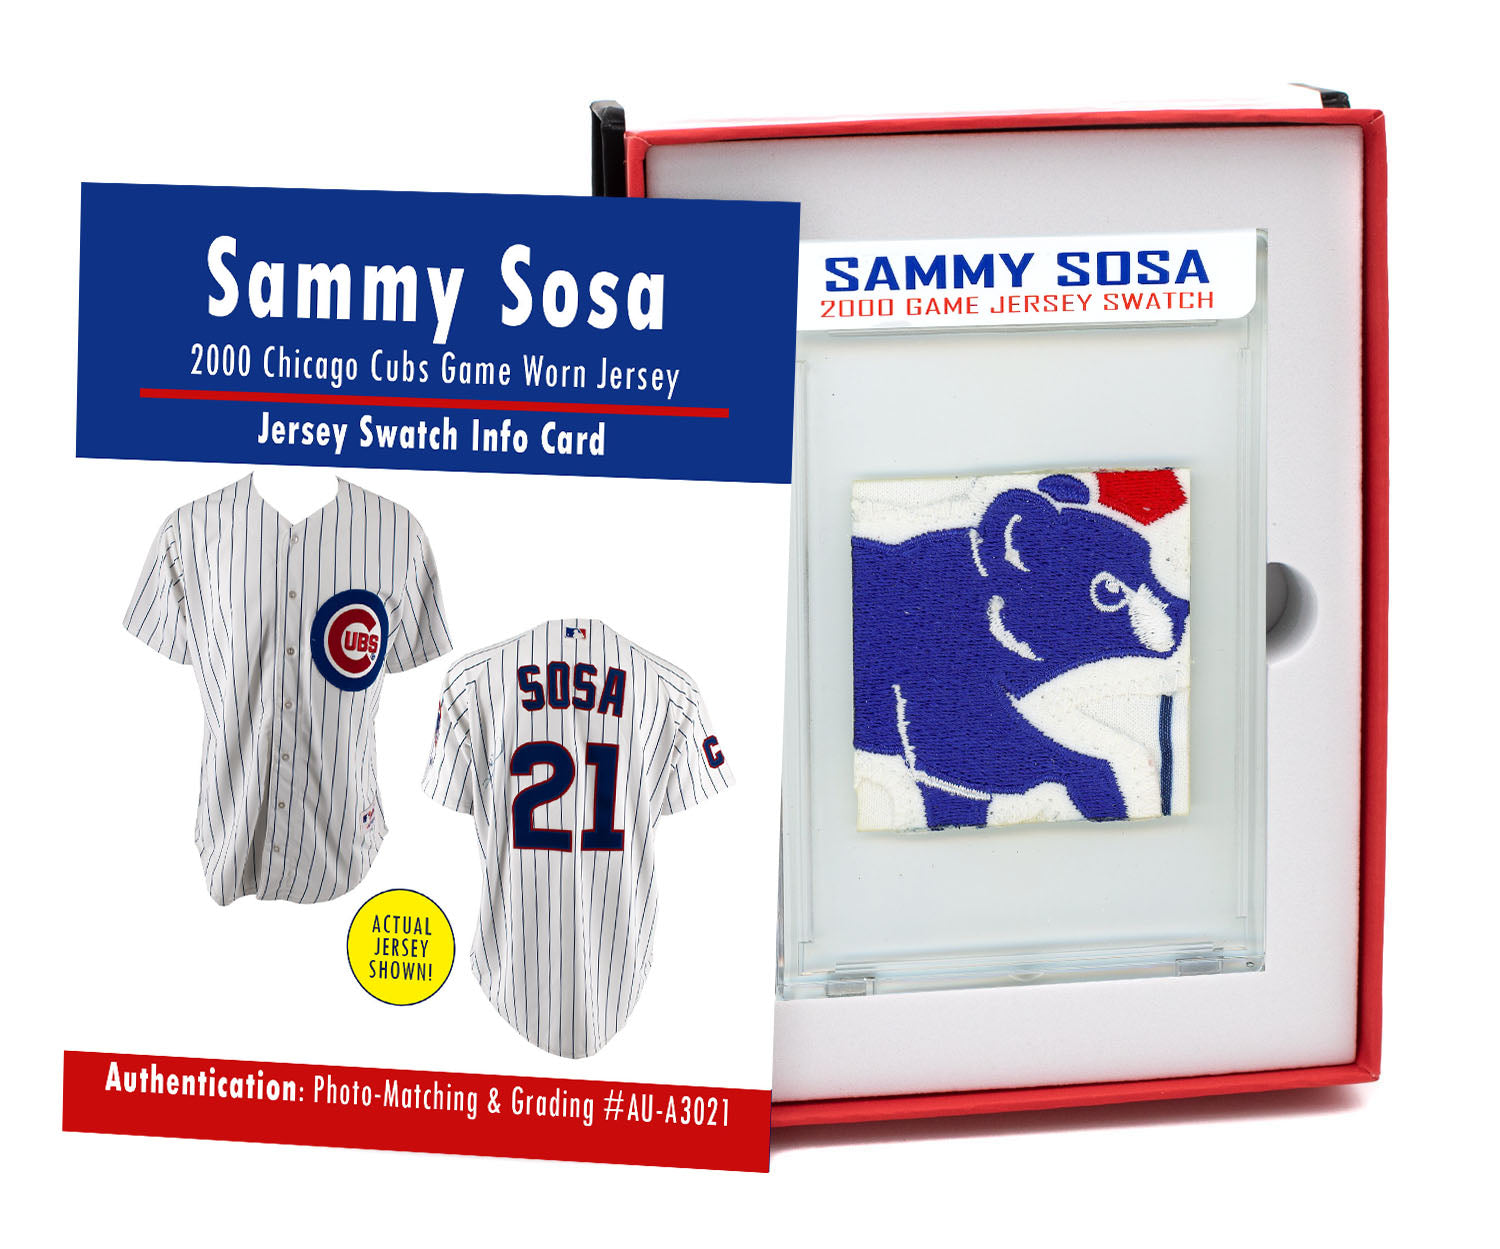 SAMMY SOSA 2000 CHICAGO CUBS GAME WORN JERSEY MYSTERY SEALED SWATCH BOX!